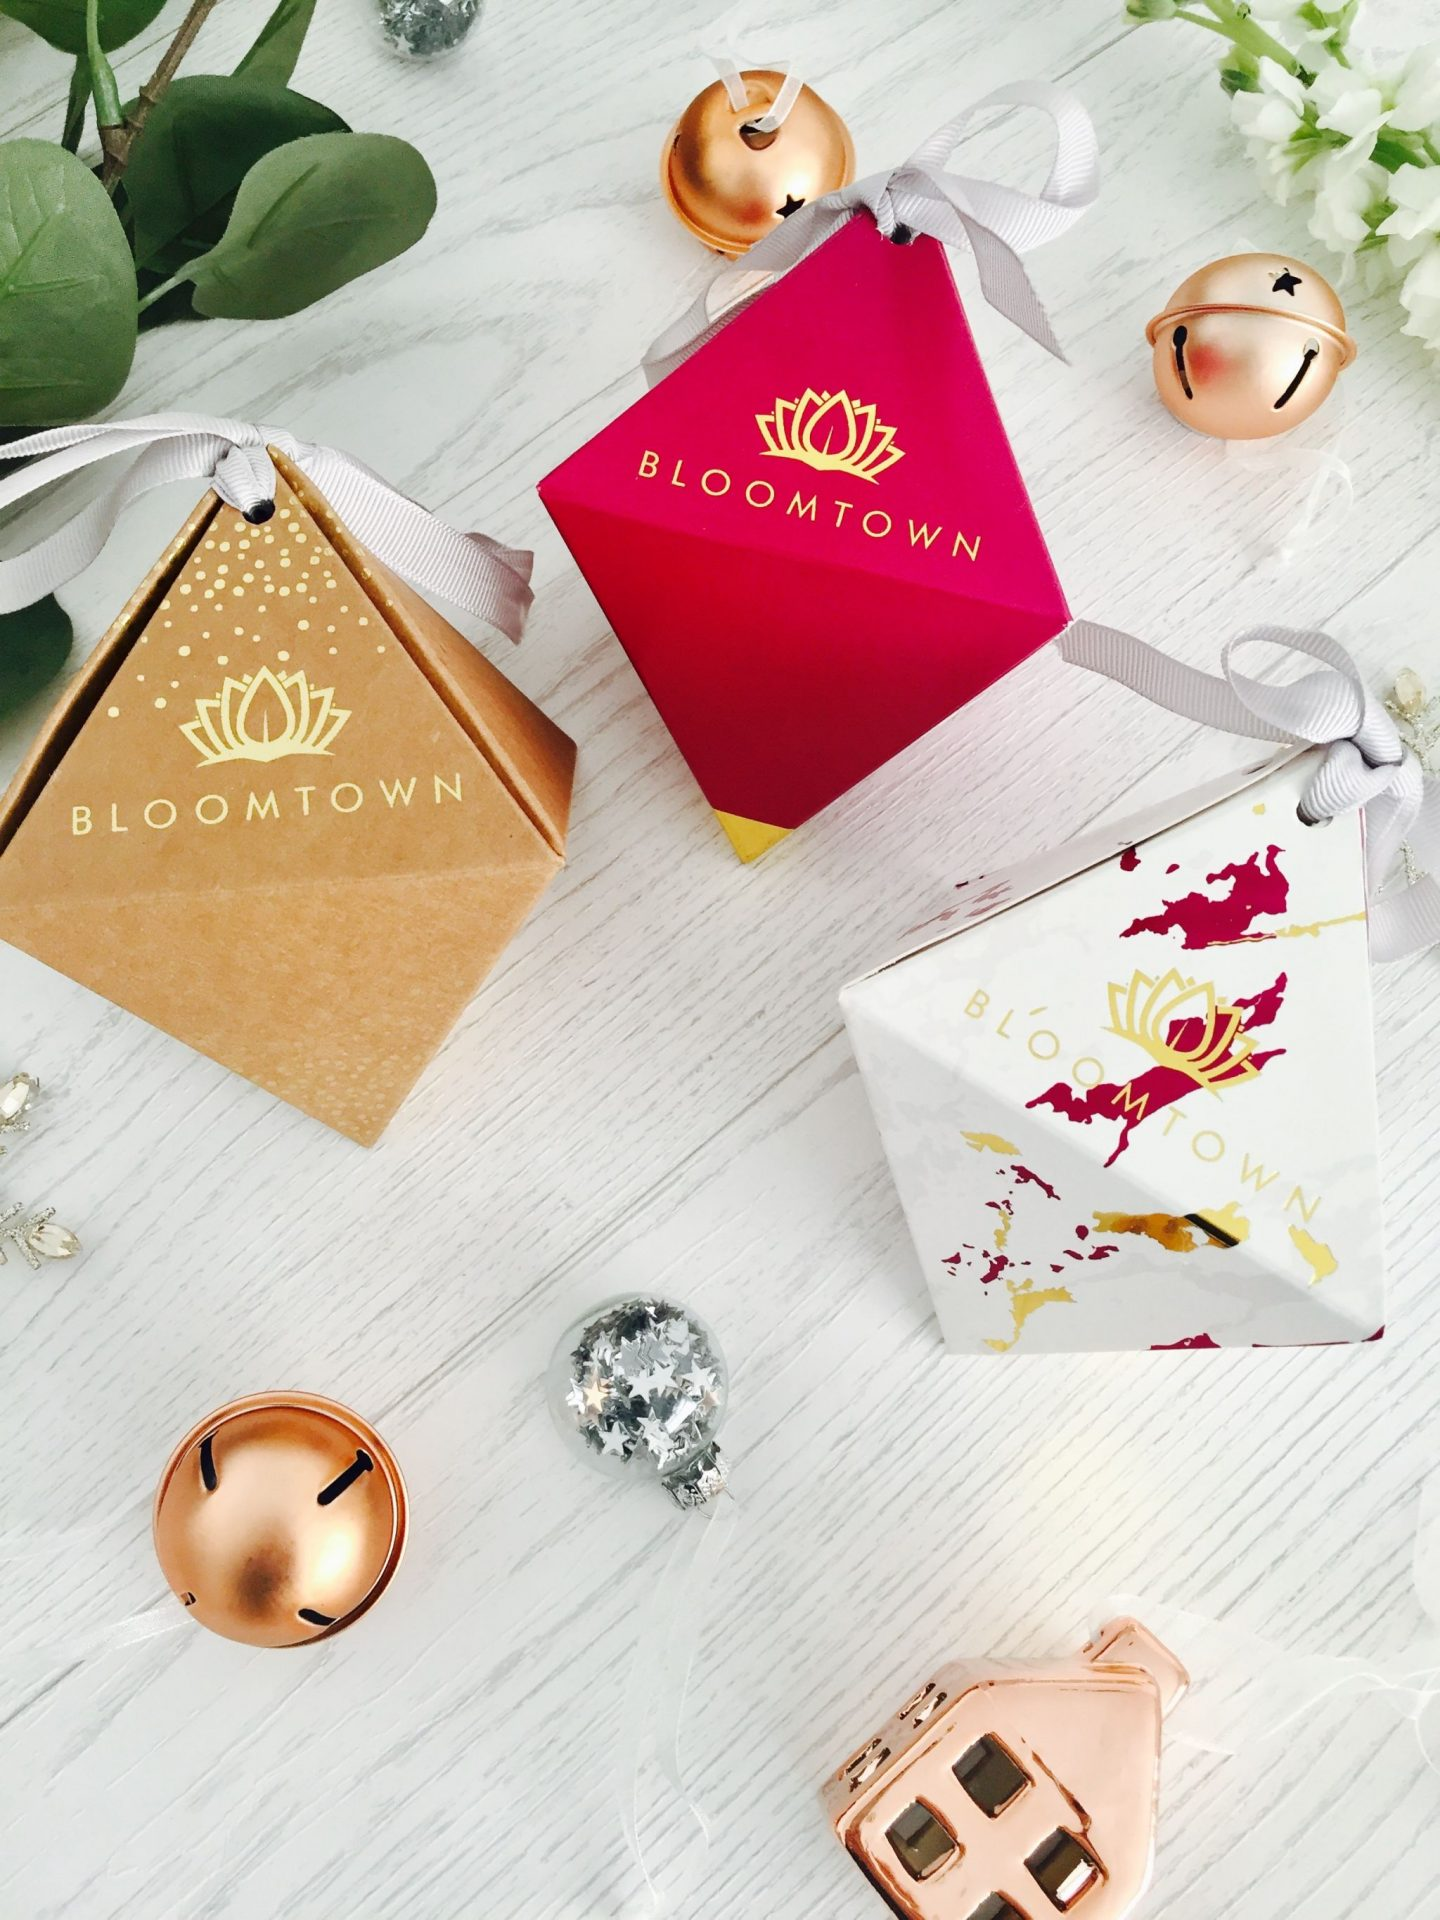 Bloomtown Beauty Baubles Limited Edition Christmas Cruelty Free Palm Oil free